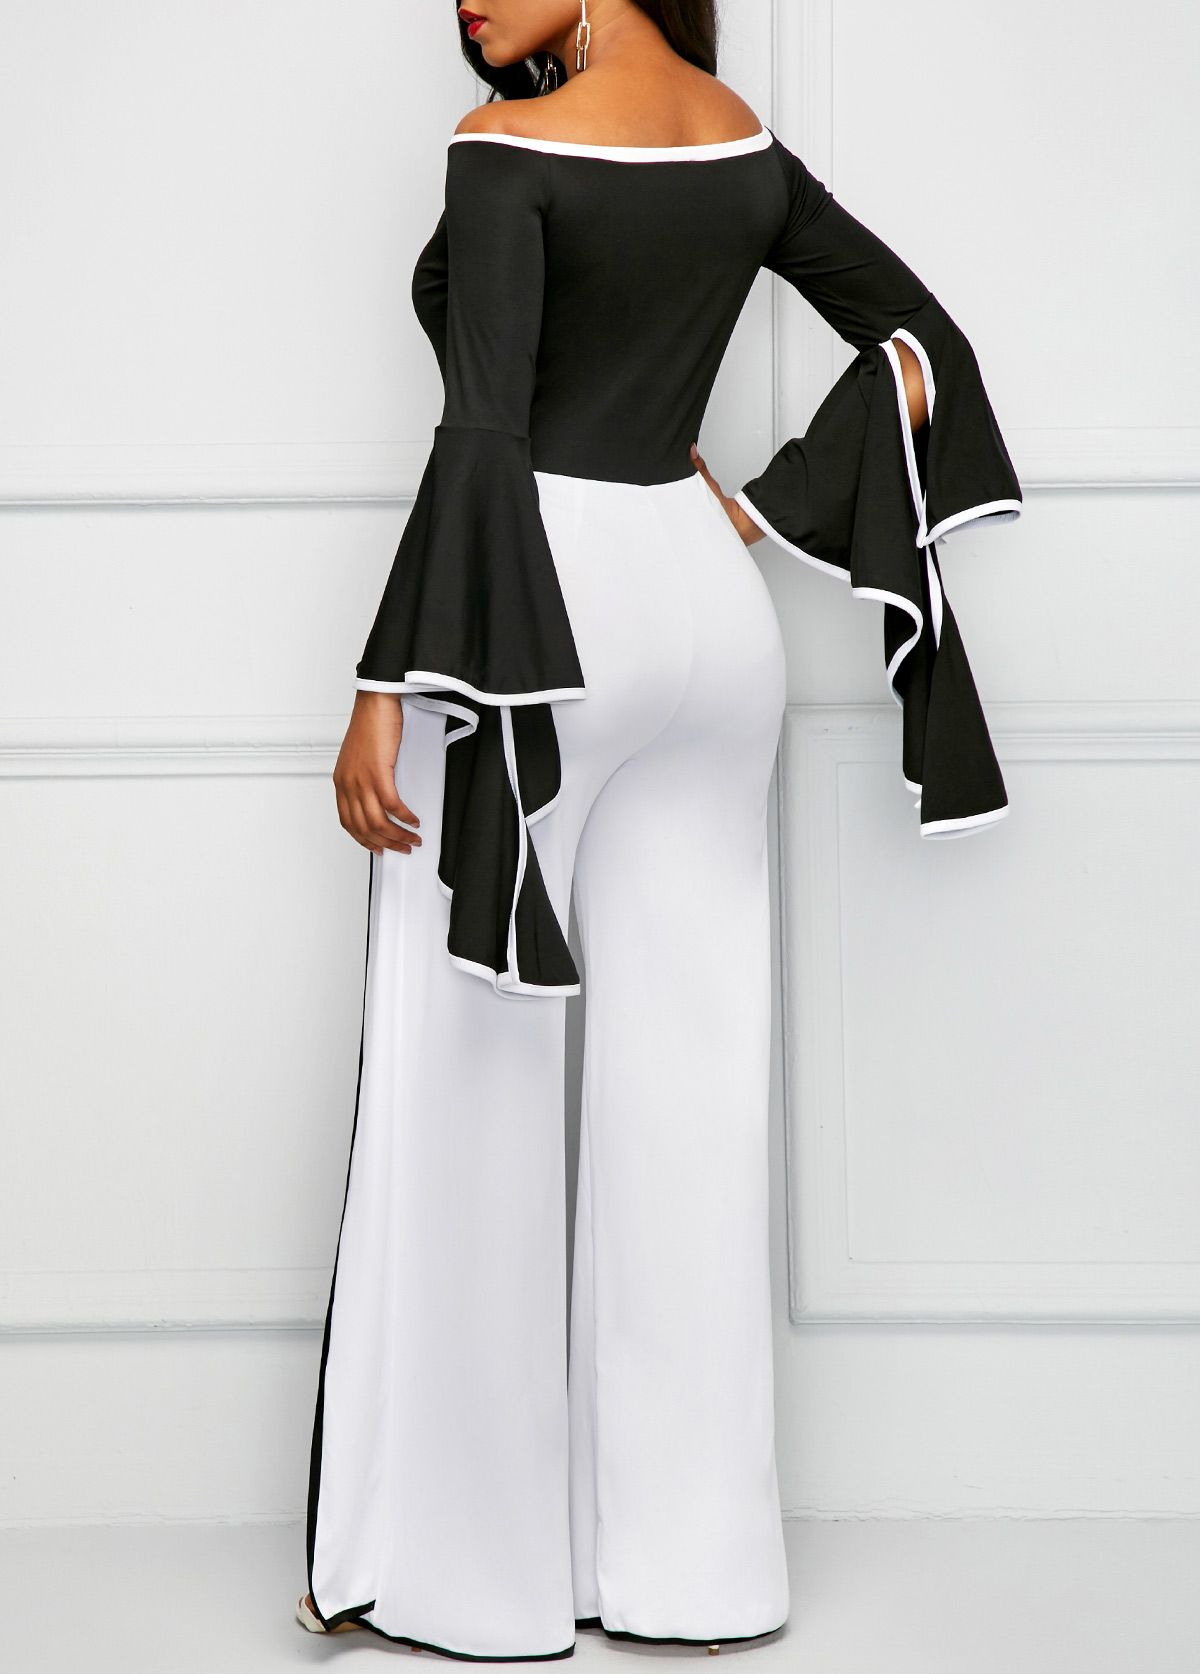 694f277ff4f Flare Sleeve Off the Shoulder Contrast Binding Jumpsuit on sale only  US 37.03 now